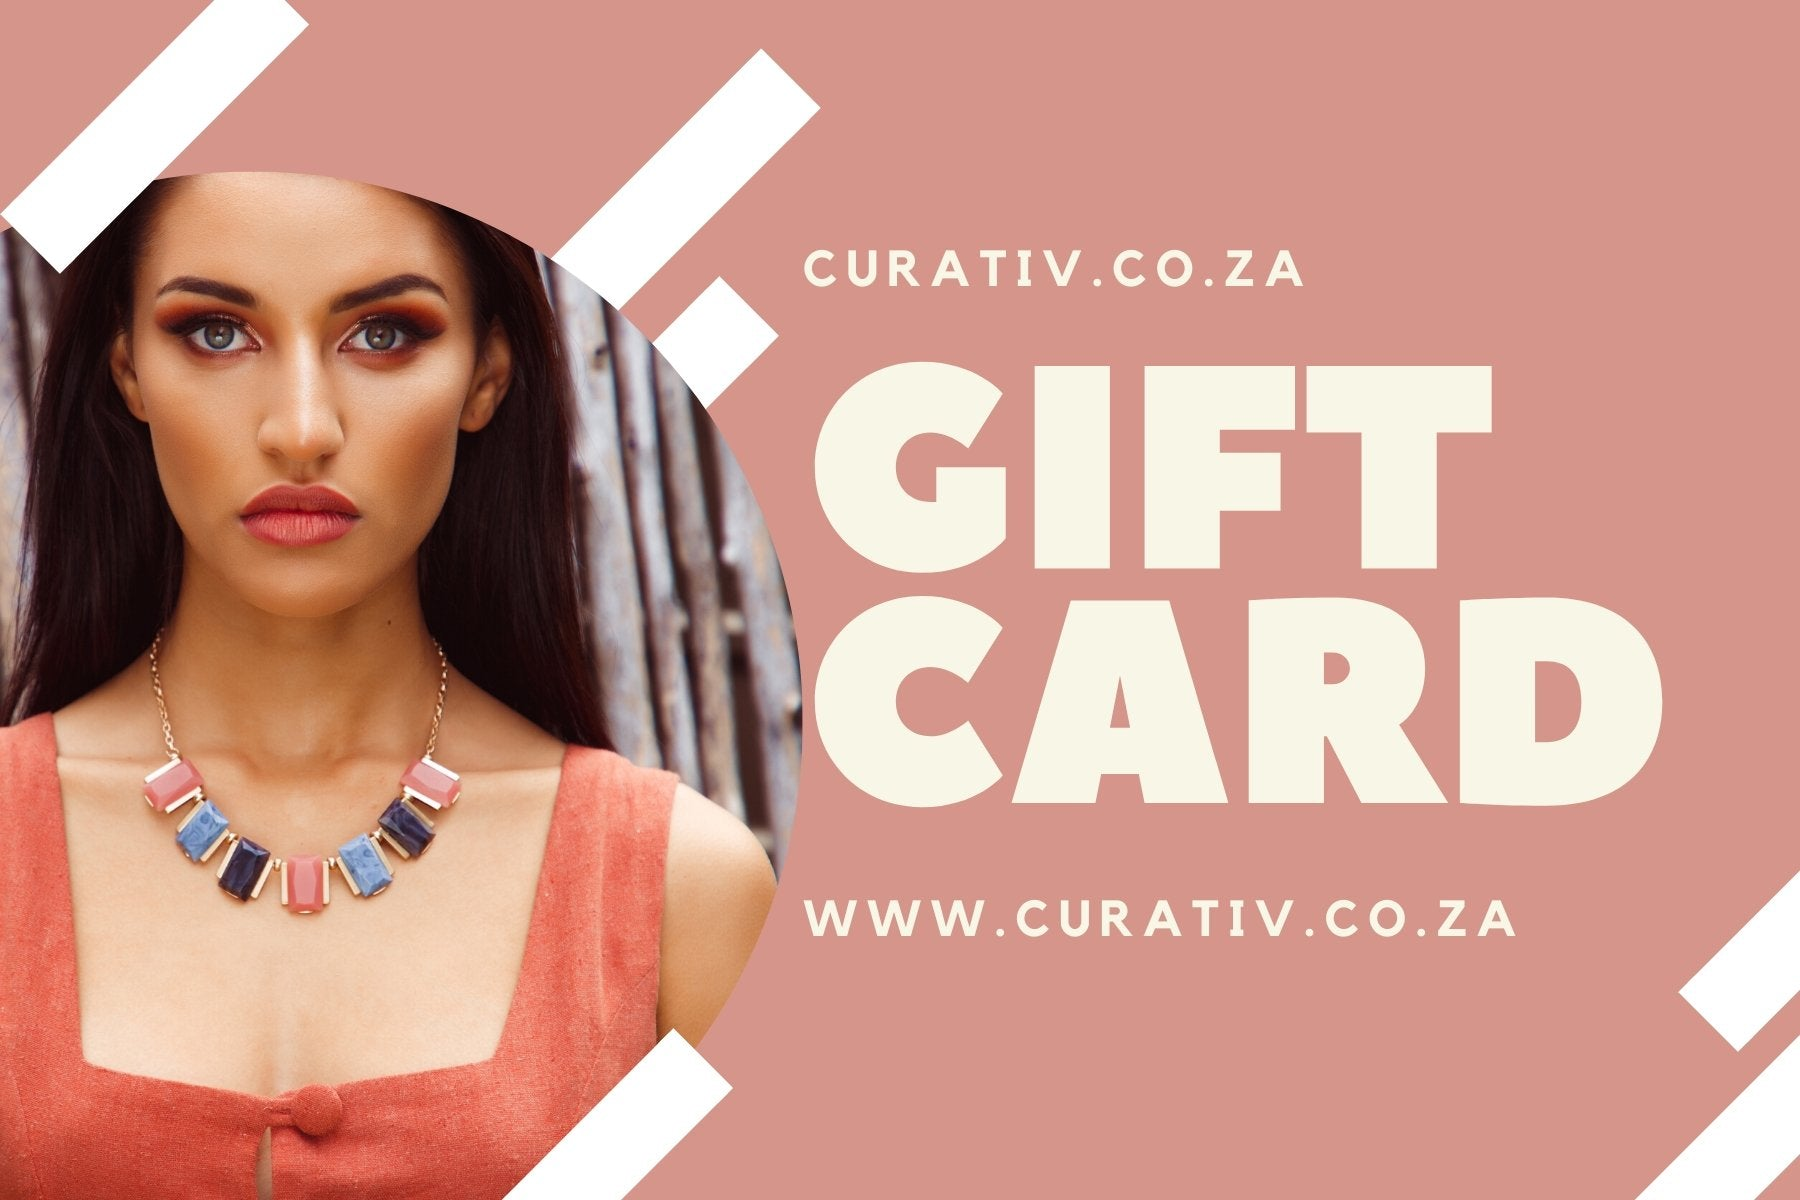 curAtiv proudly gives you Gift Card Gift Card.